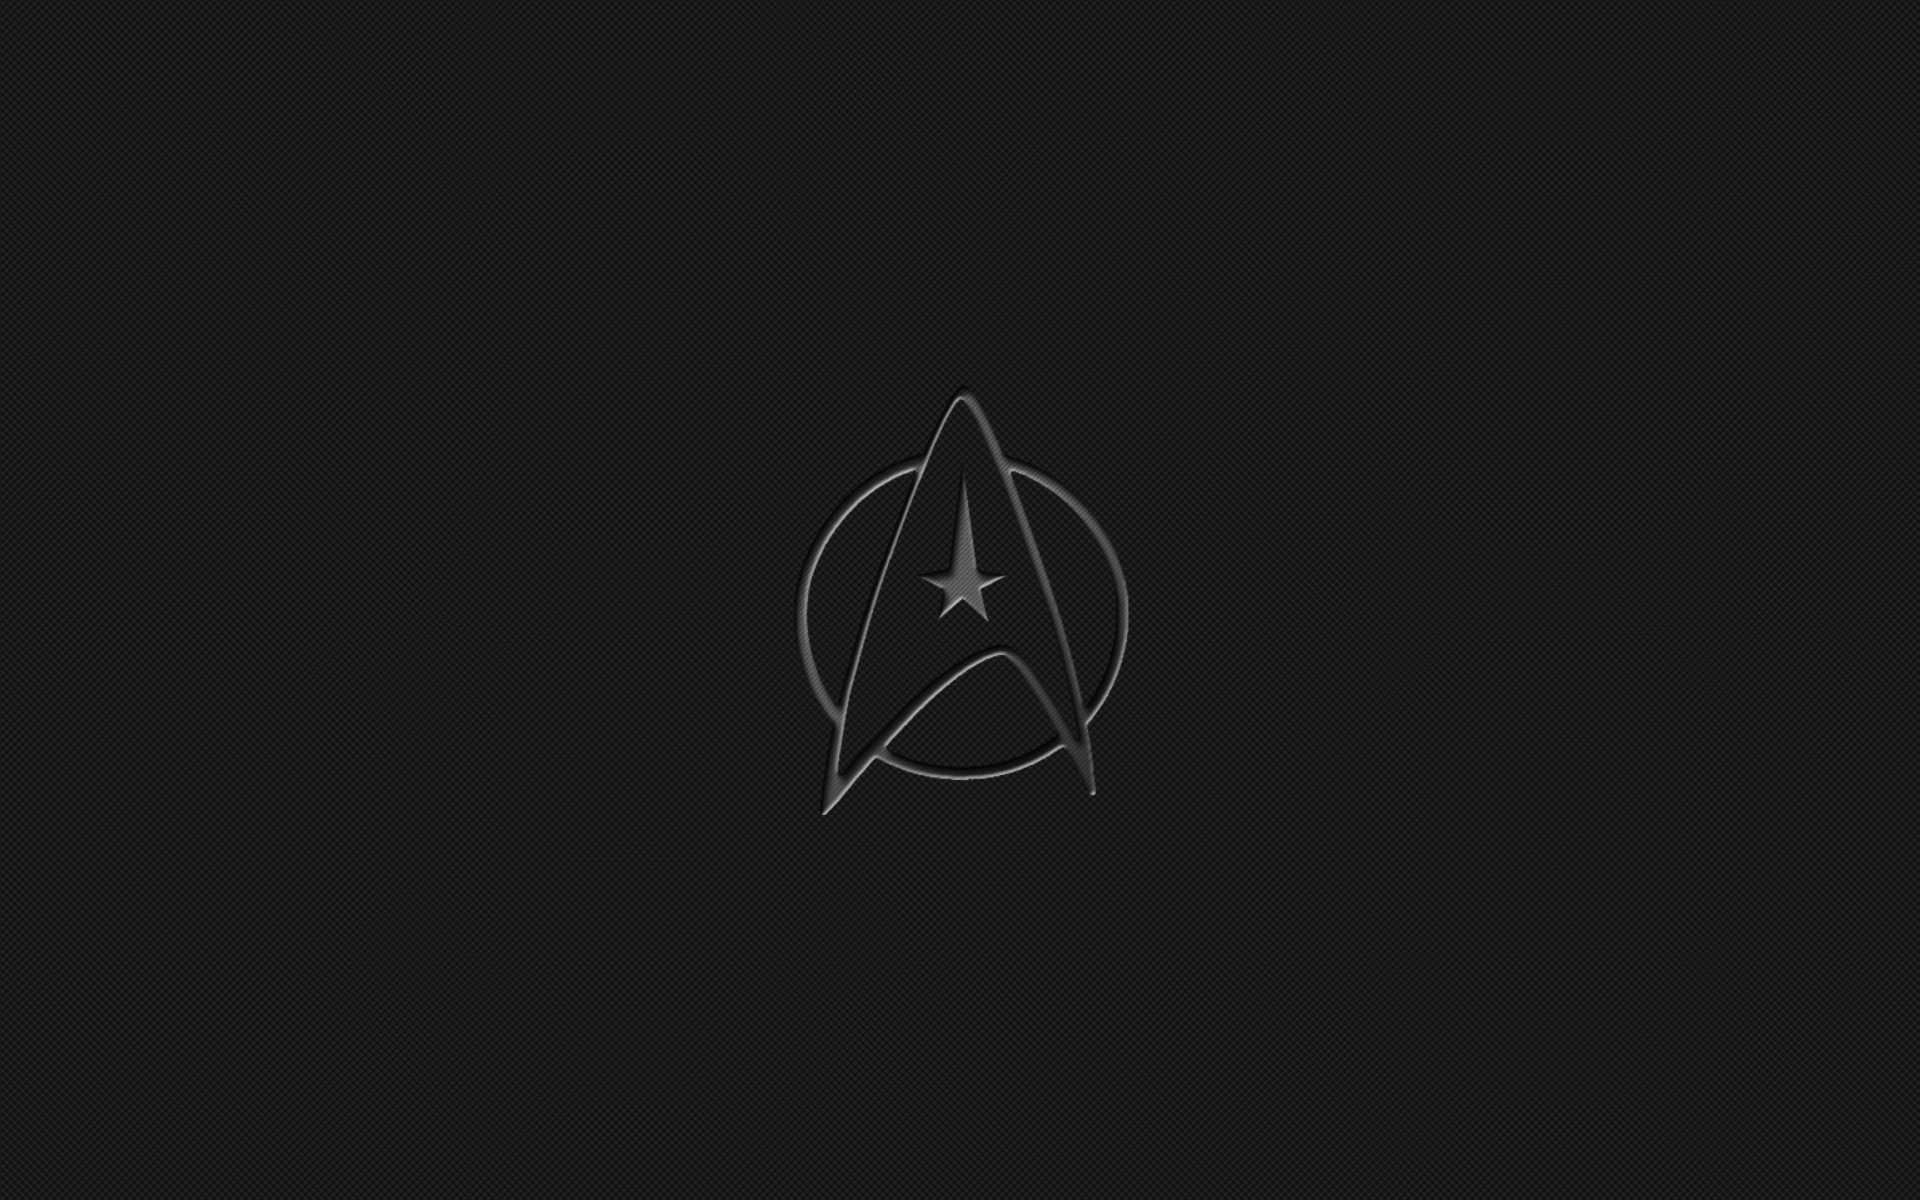 Res: 1920x1200, Star Trek Logo Desktop Background HD 2560x1440 | deskbg.com